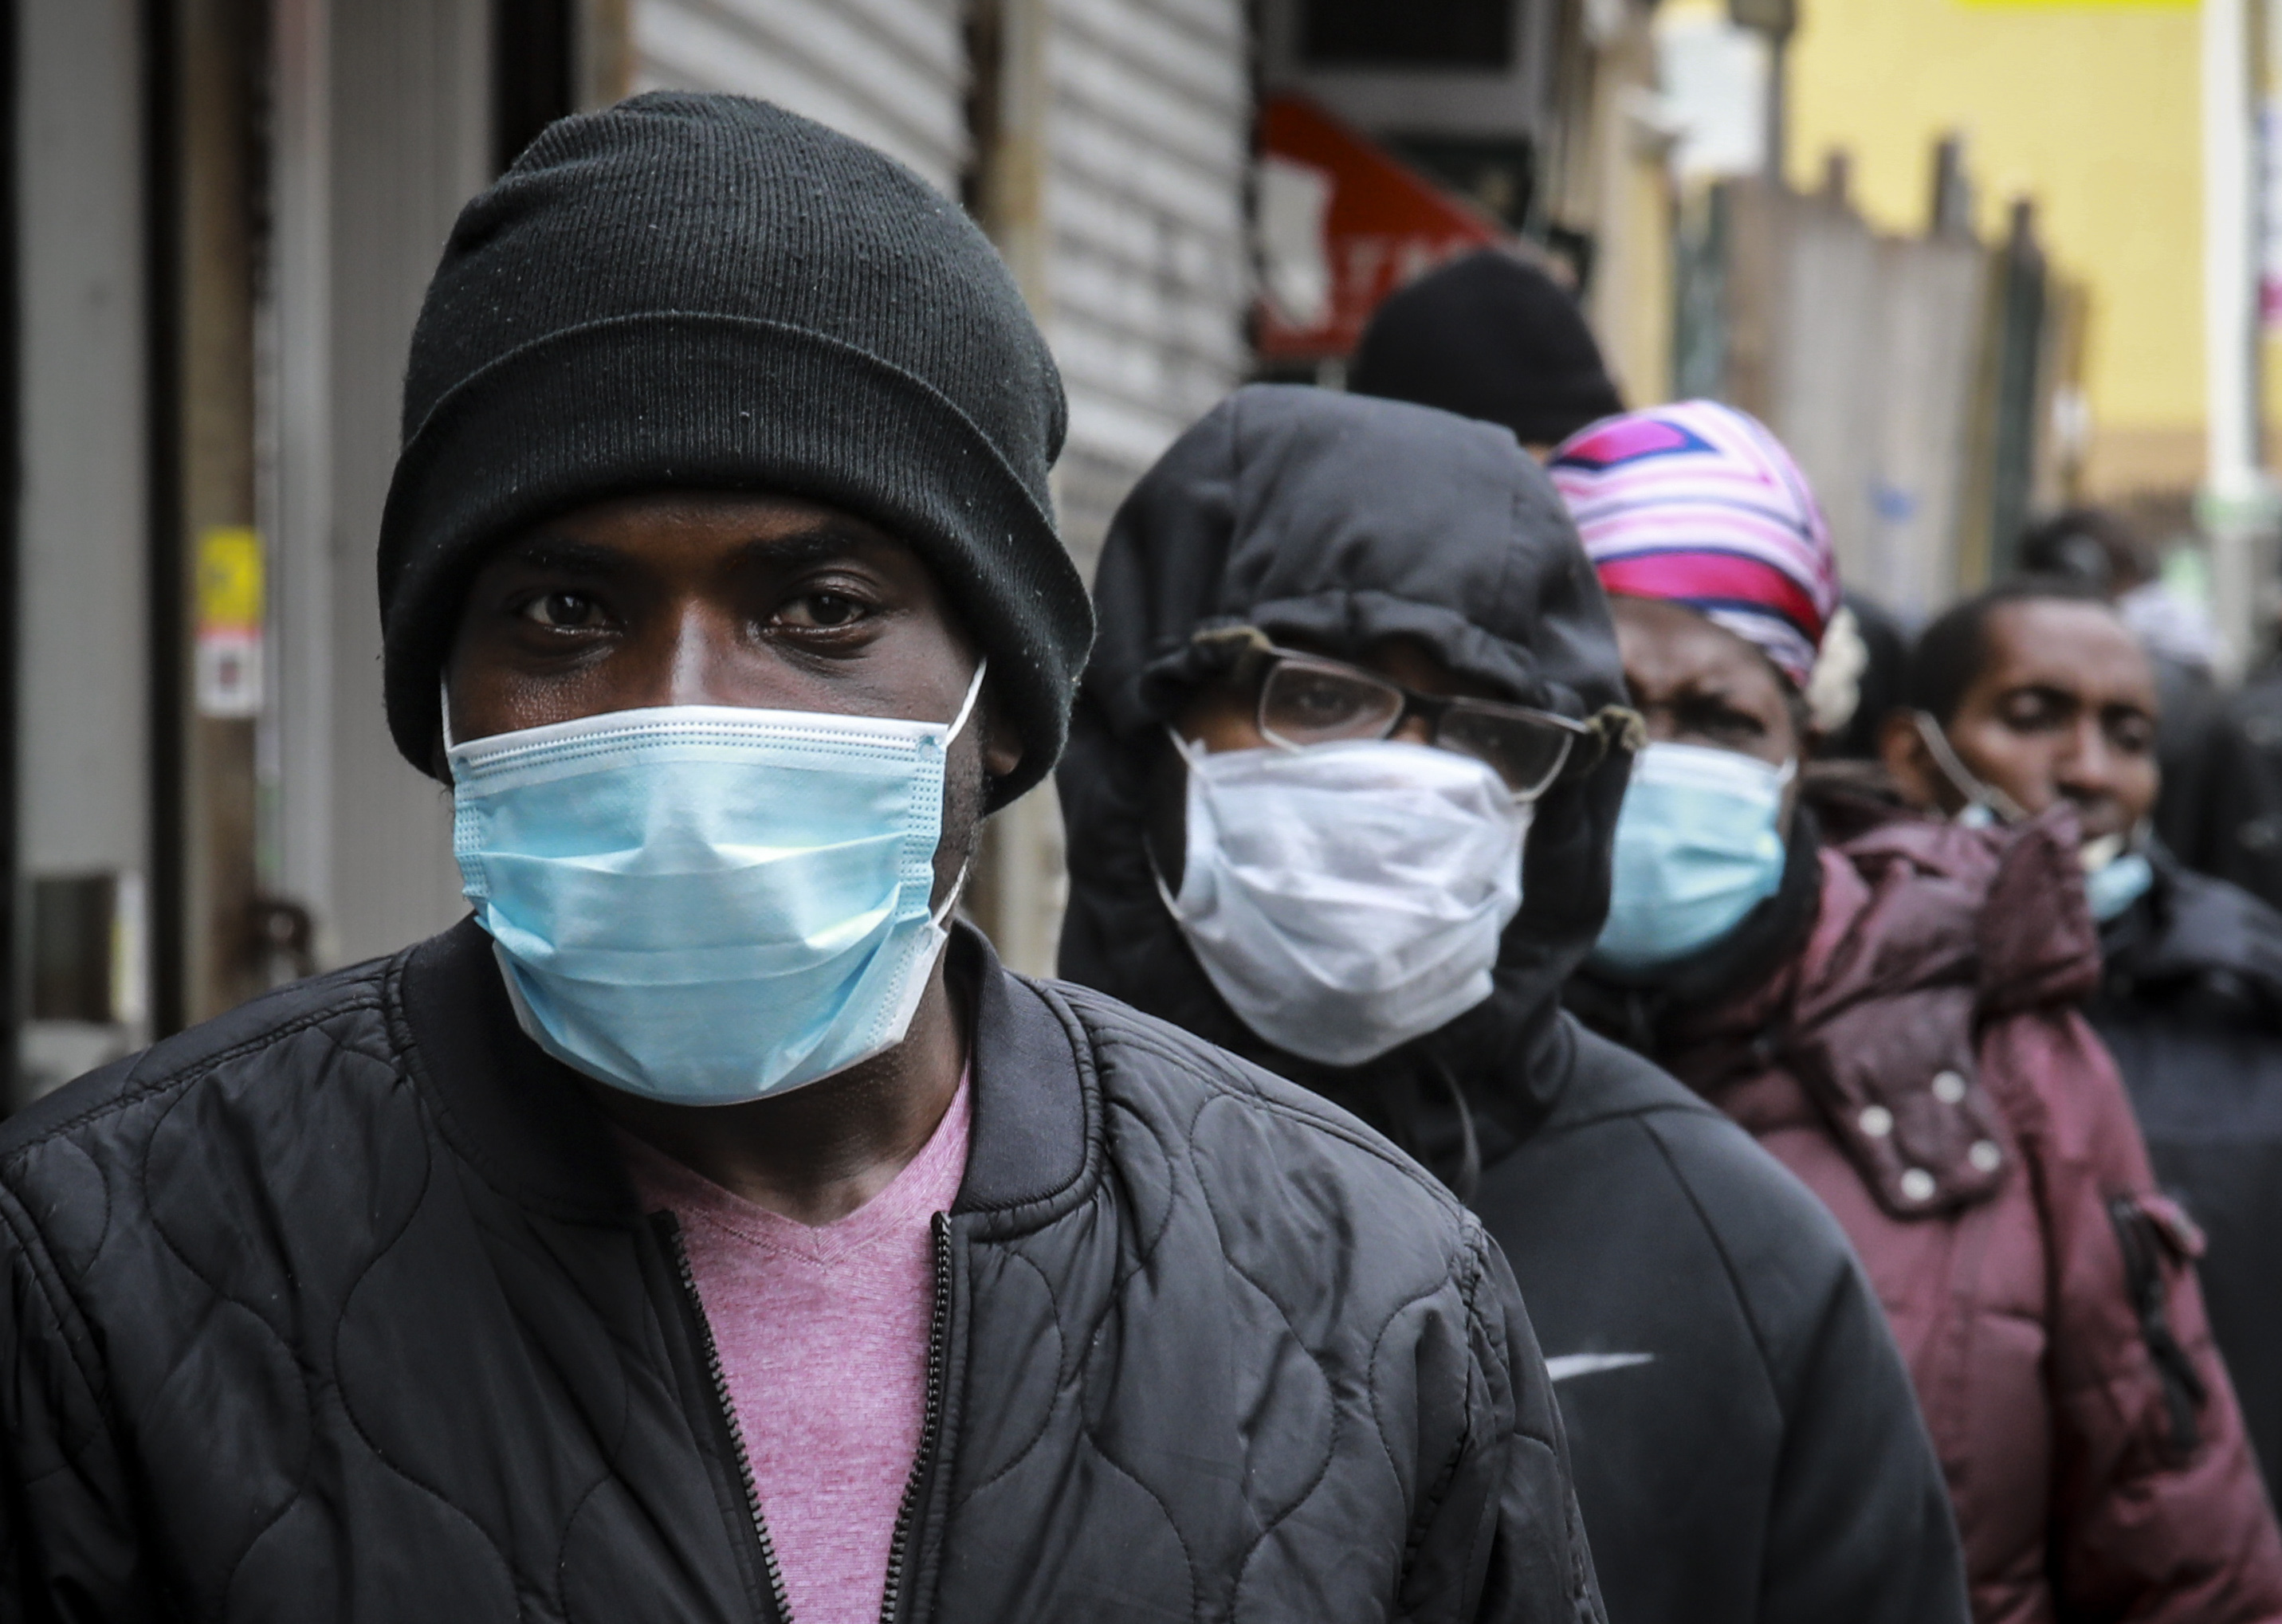 With Or Without A Mask Communities Of Color Fear Unequal Enforcement During Pandemic The Boston Globe